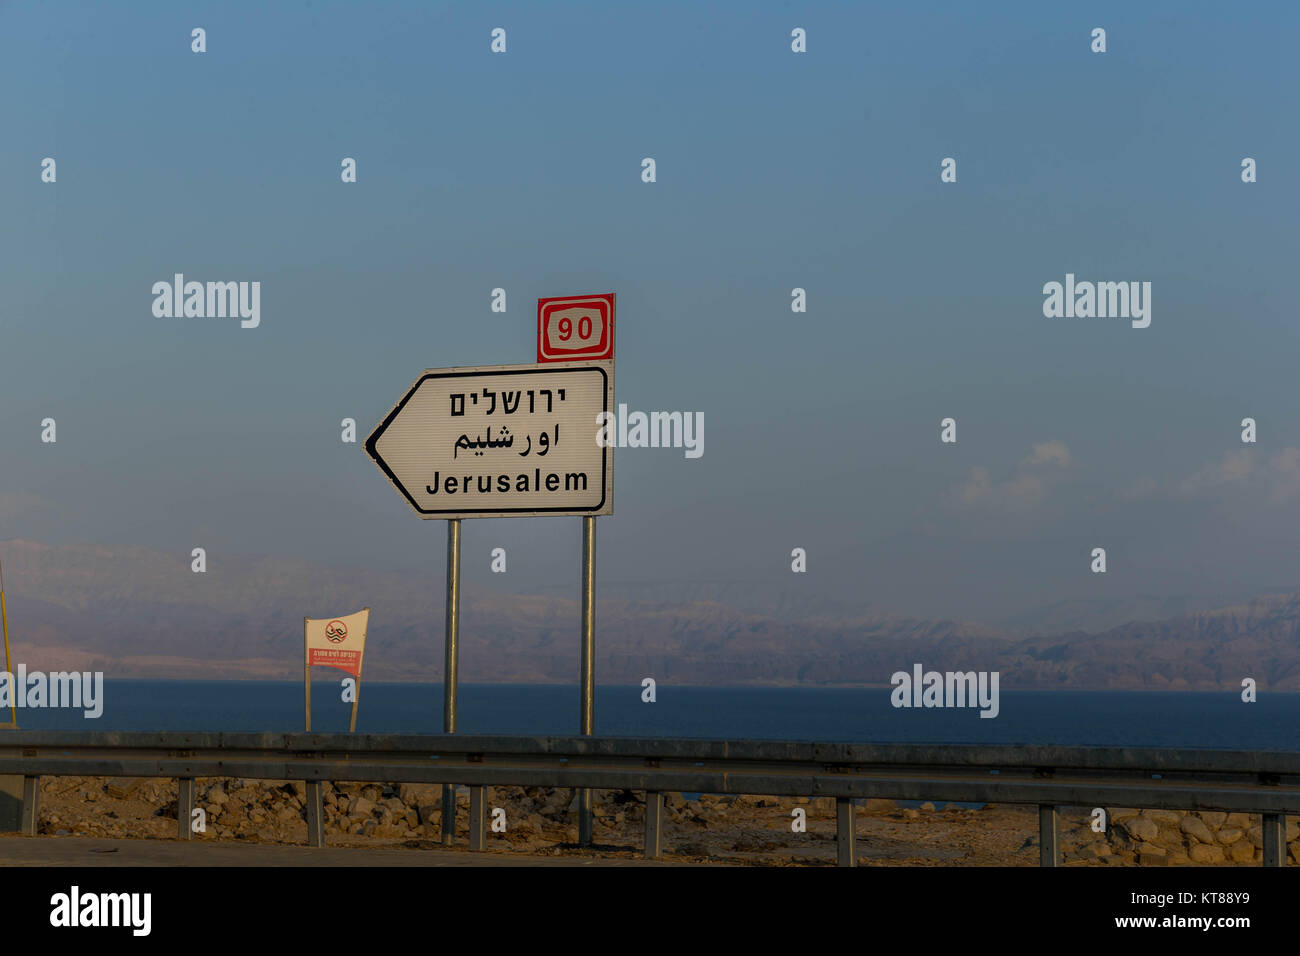 Road sign in three languages point the direction Jerusalem - Stock Image